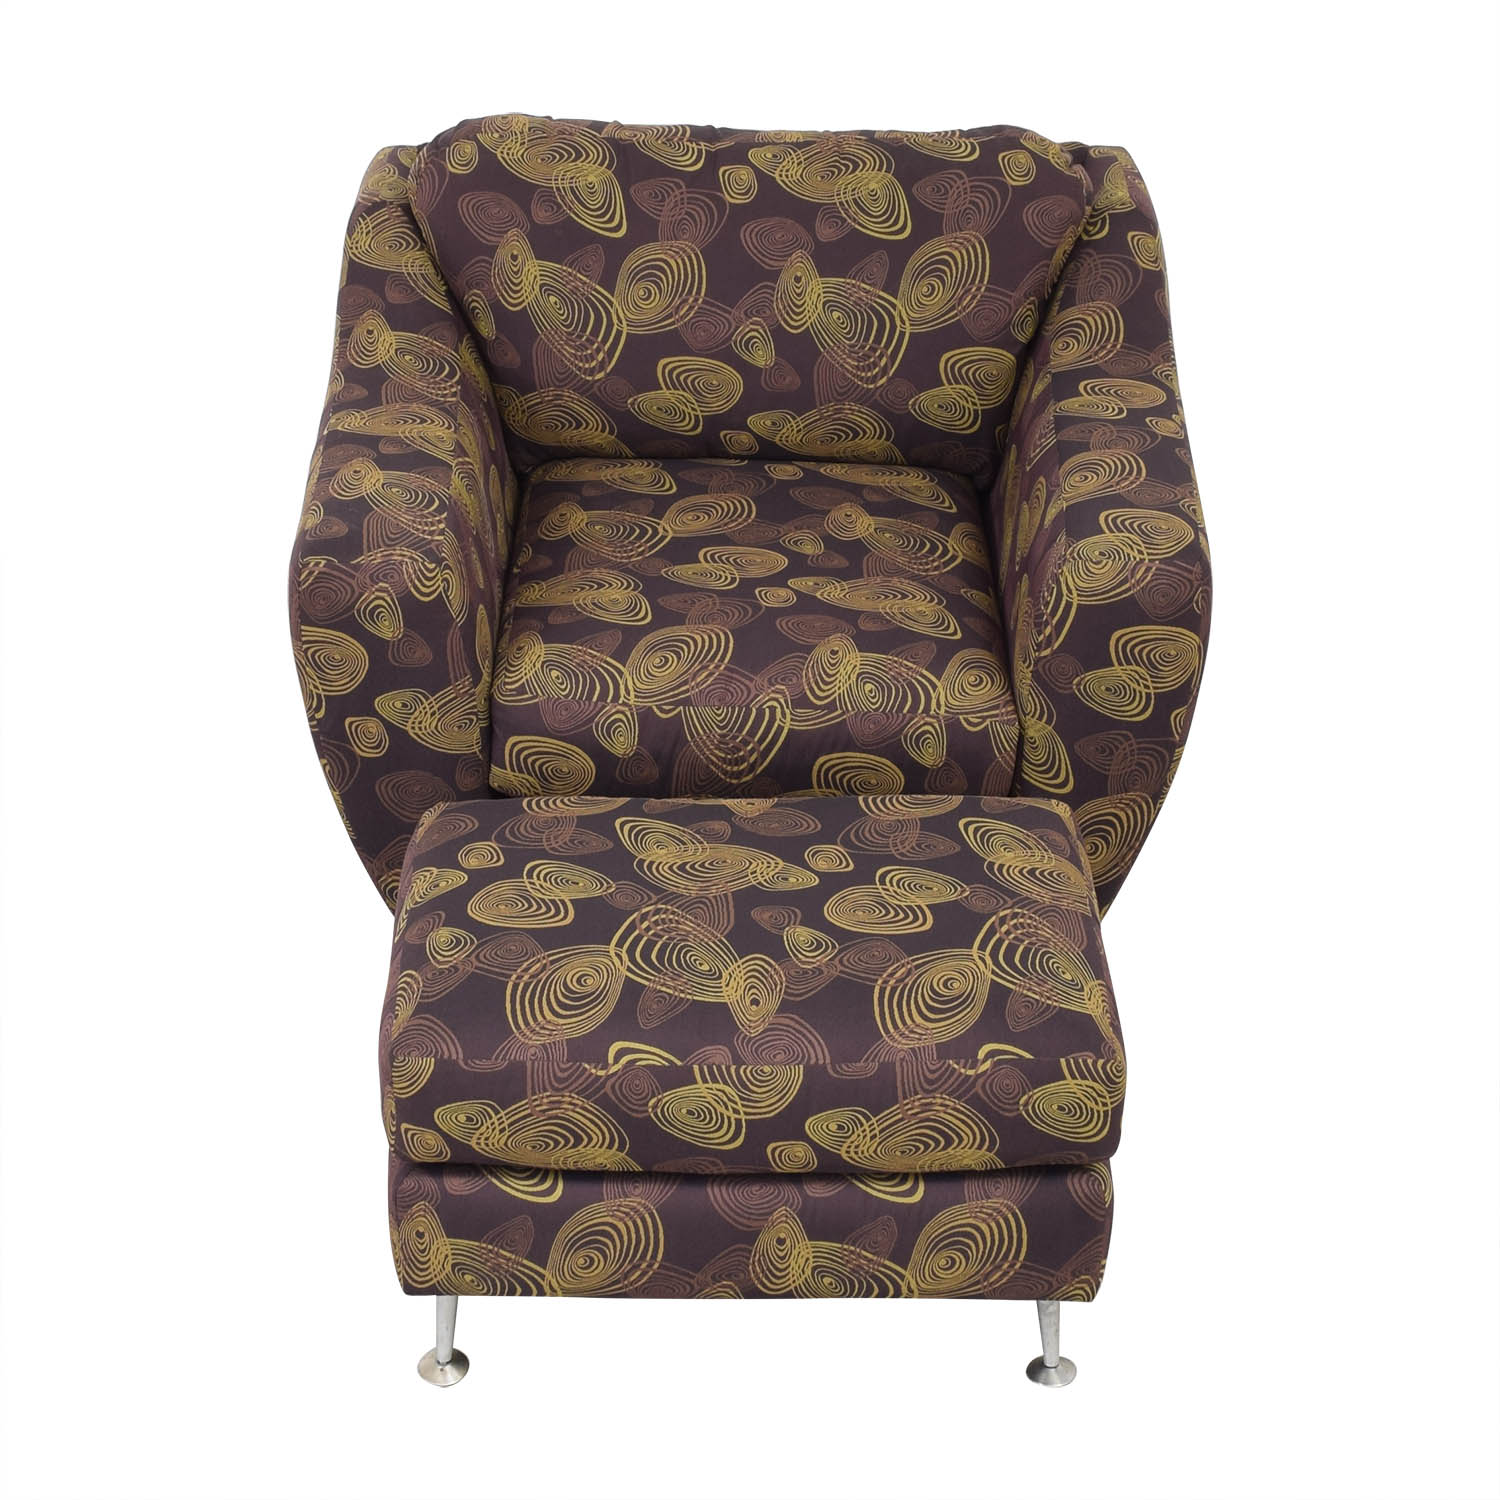 Carter Furniture Carter Accent Chair and Ottoman dark brown and gold